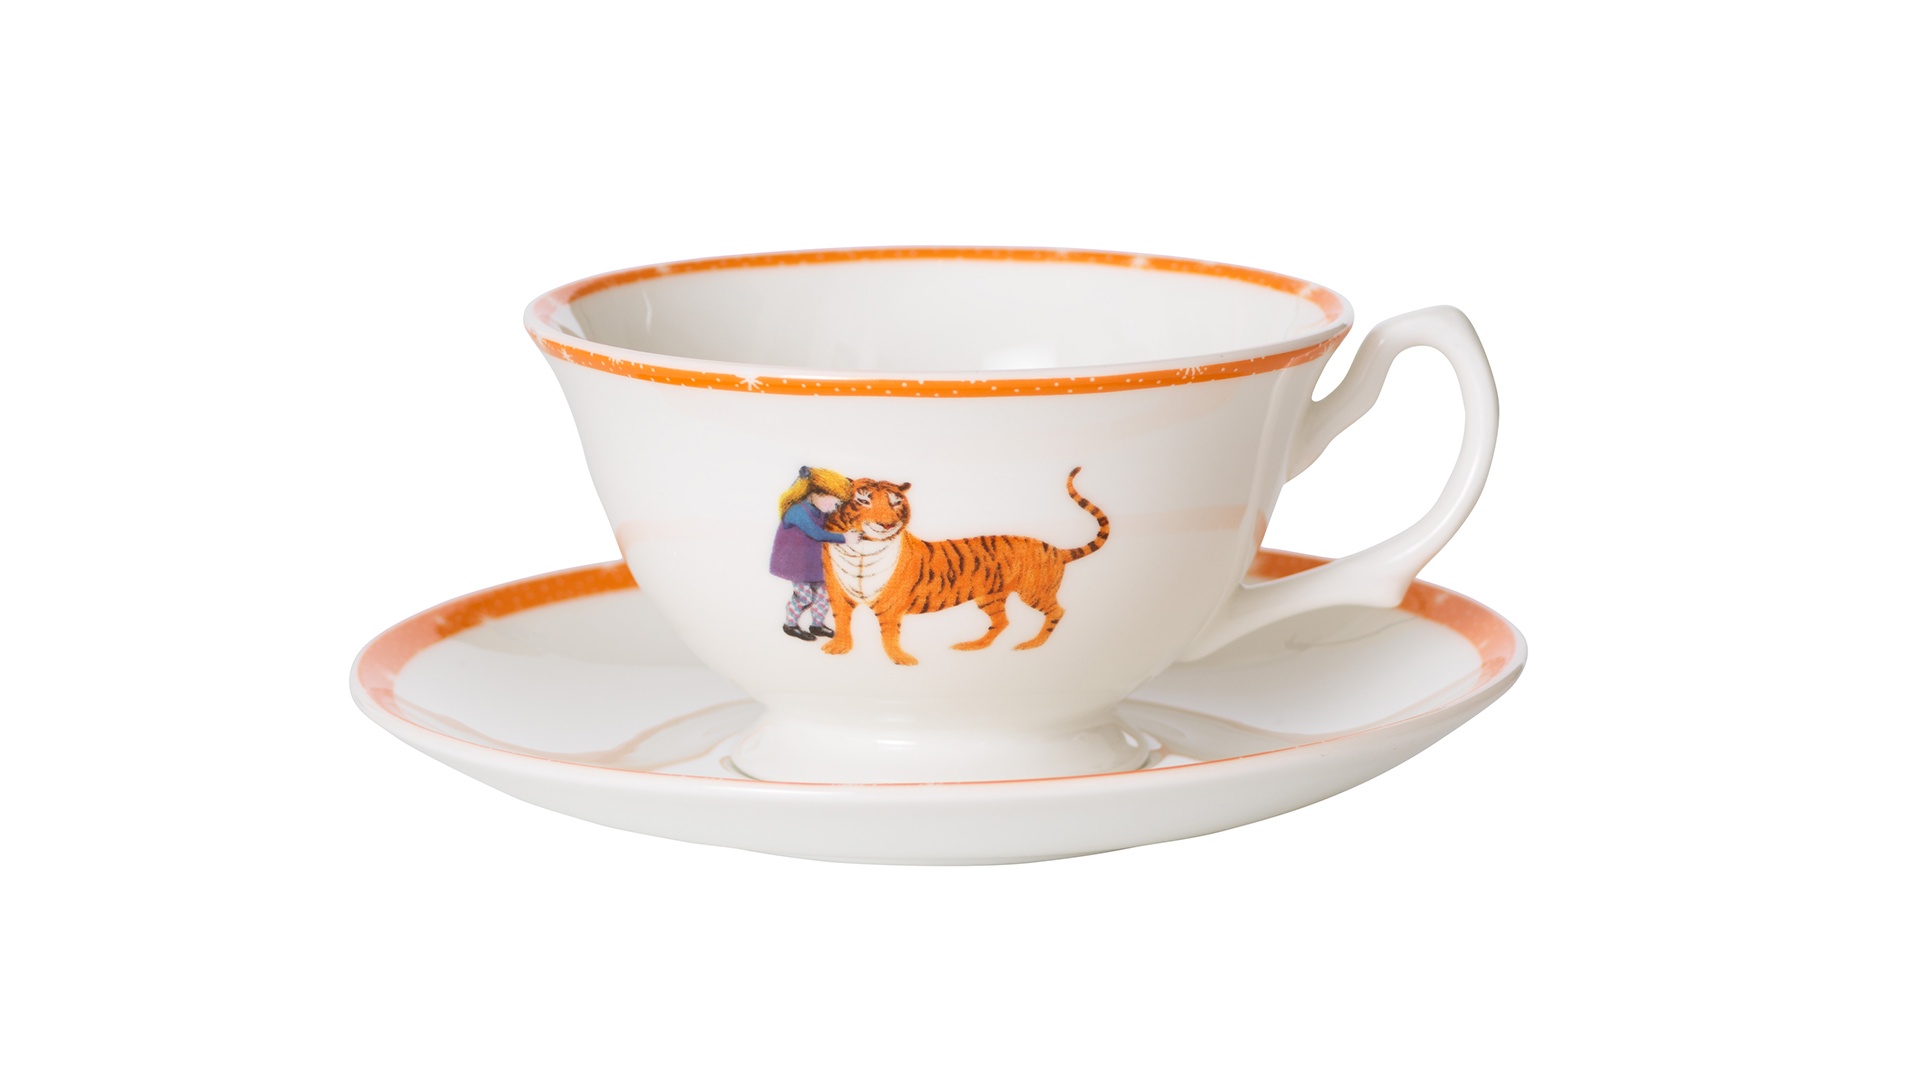 The Tiger Who Came to Tea at The Savoy - Tea Cups and Saucers